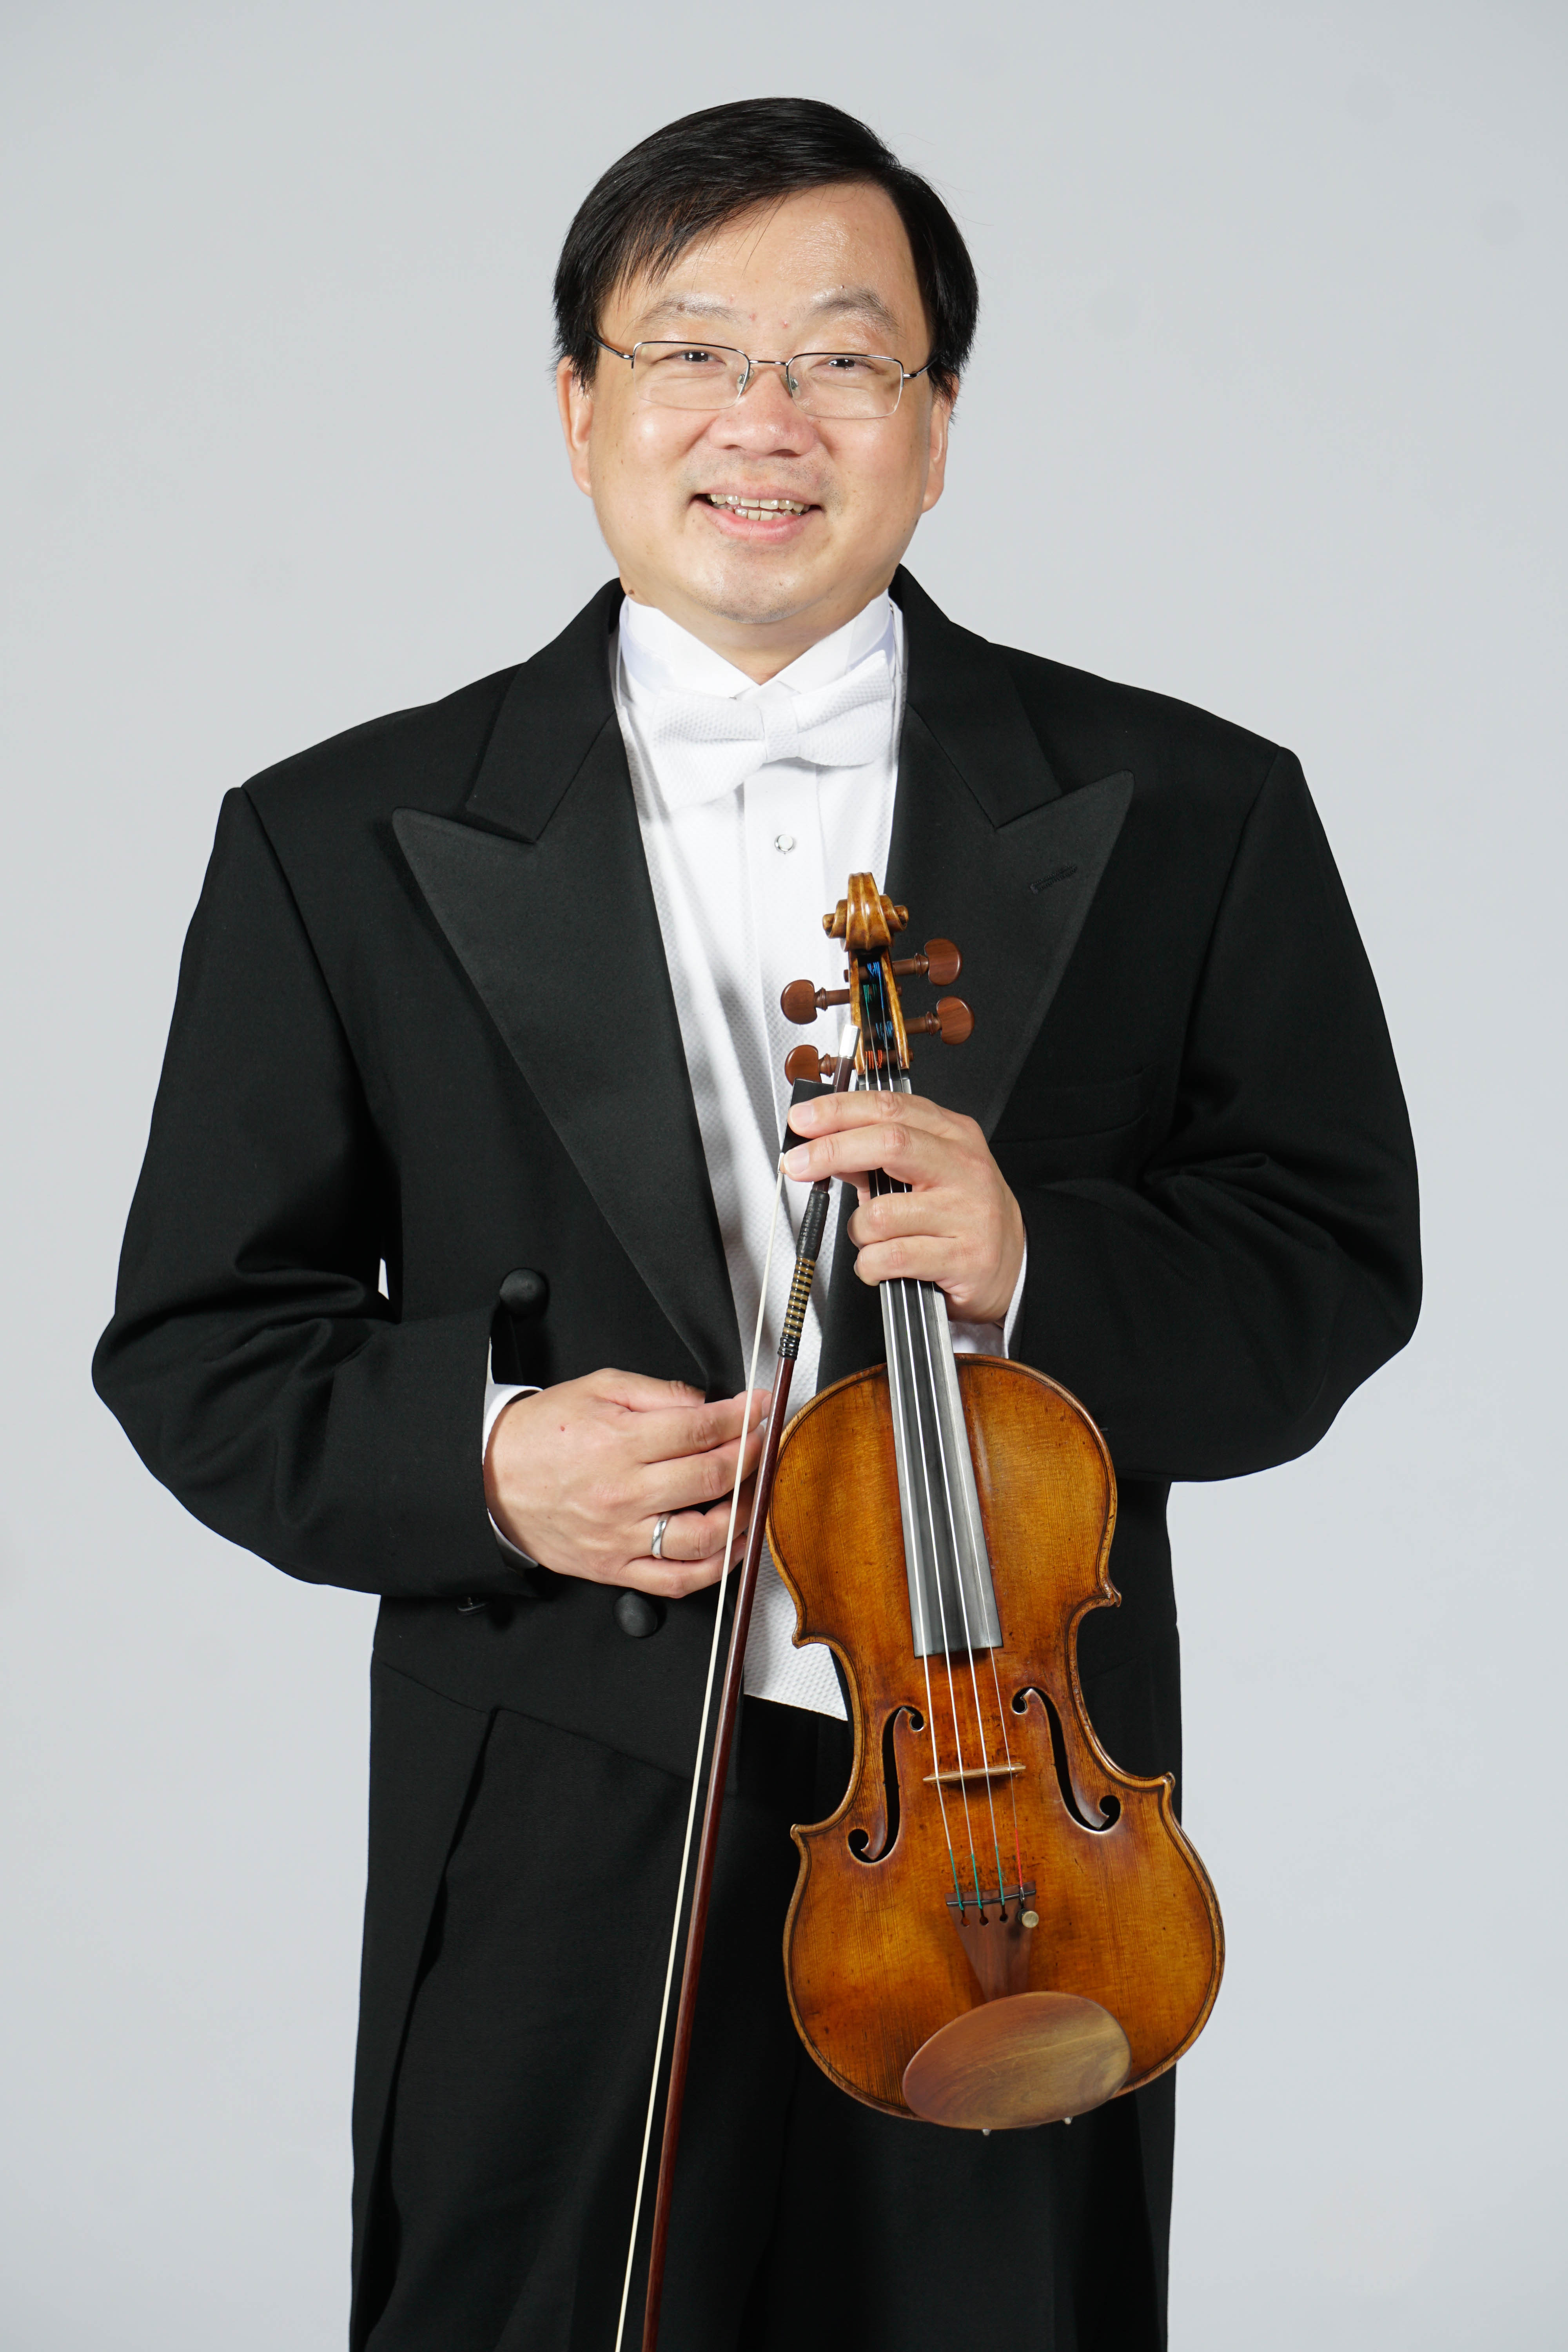 Michael Shih, Concertmaster